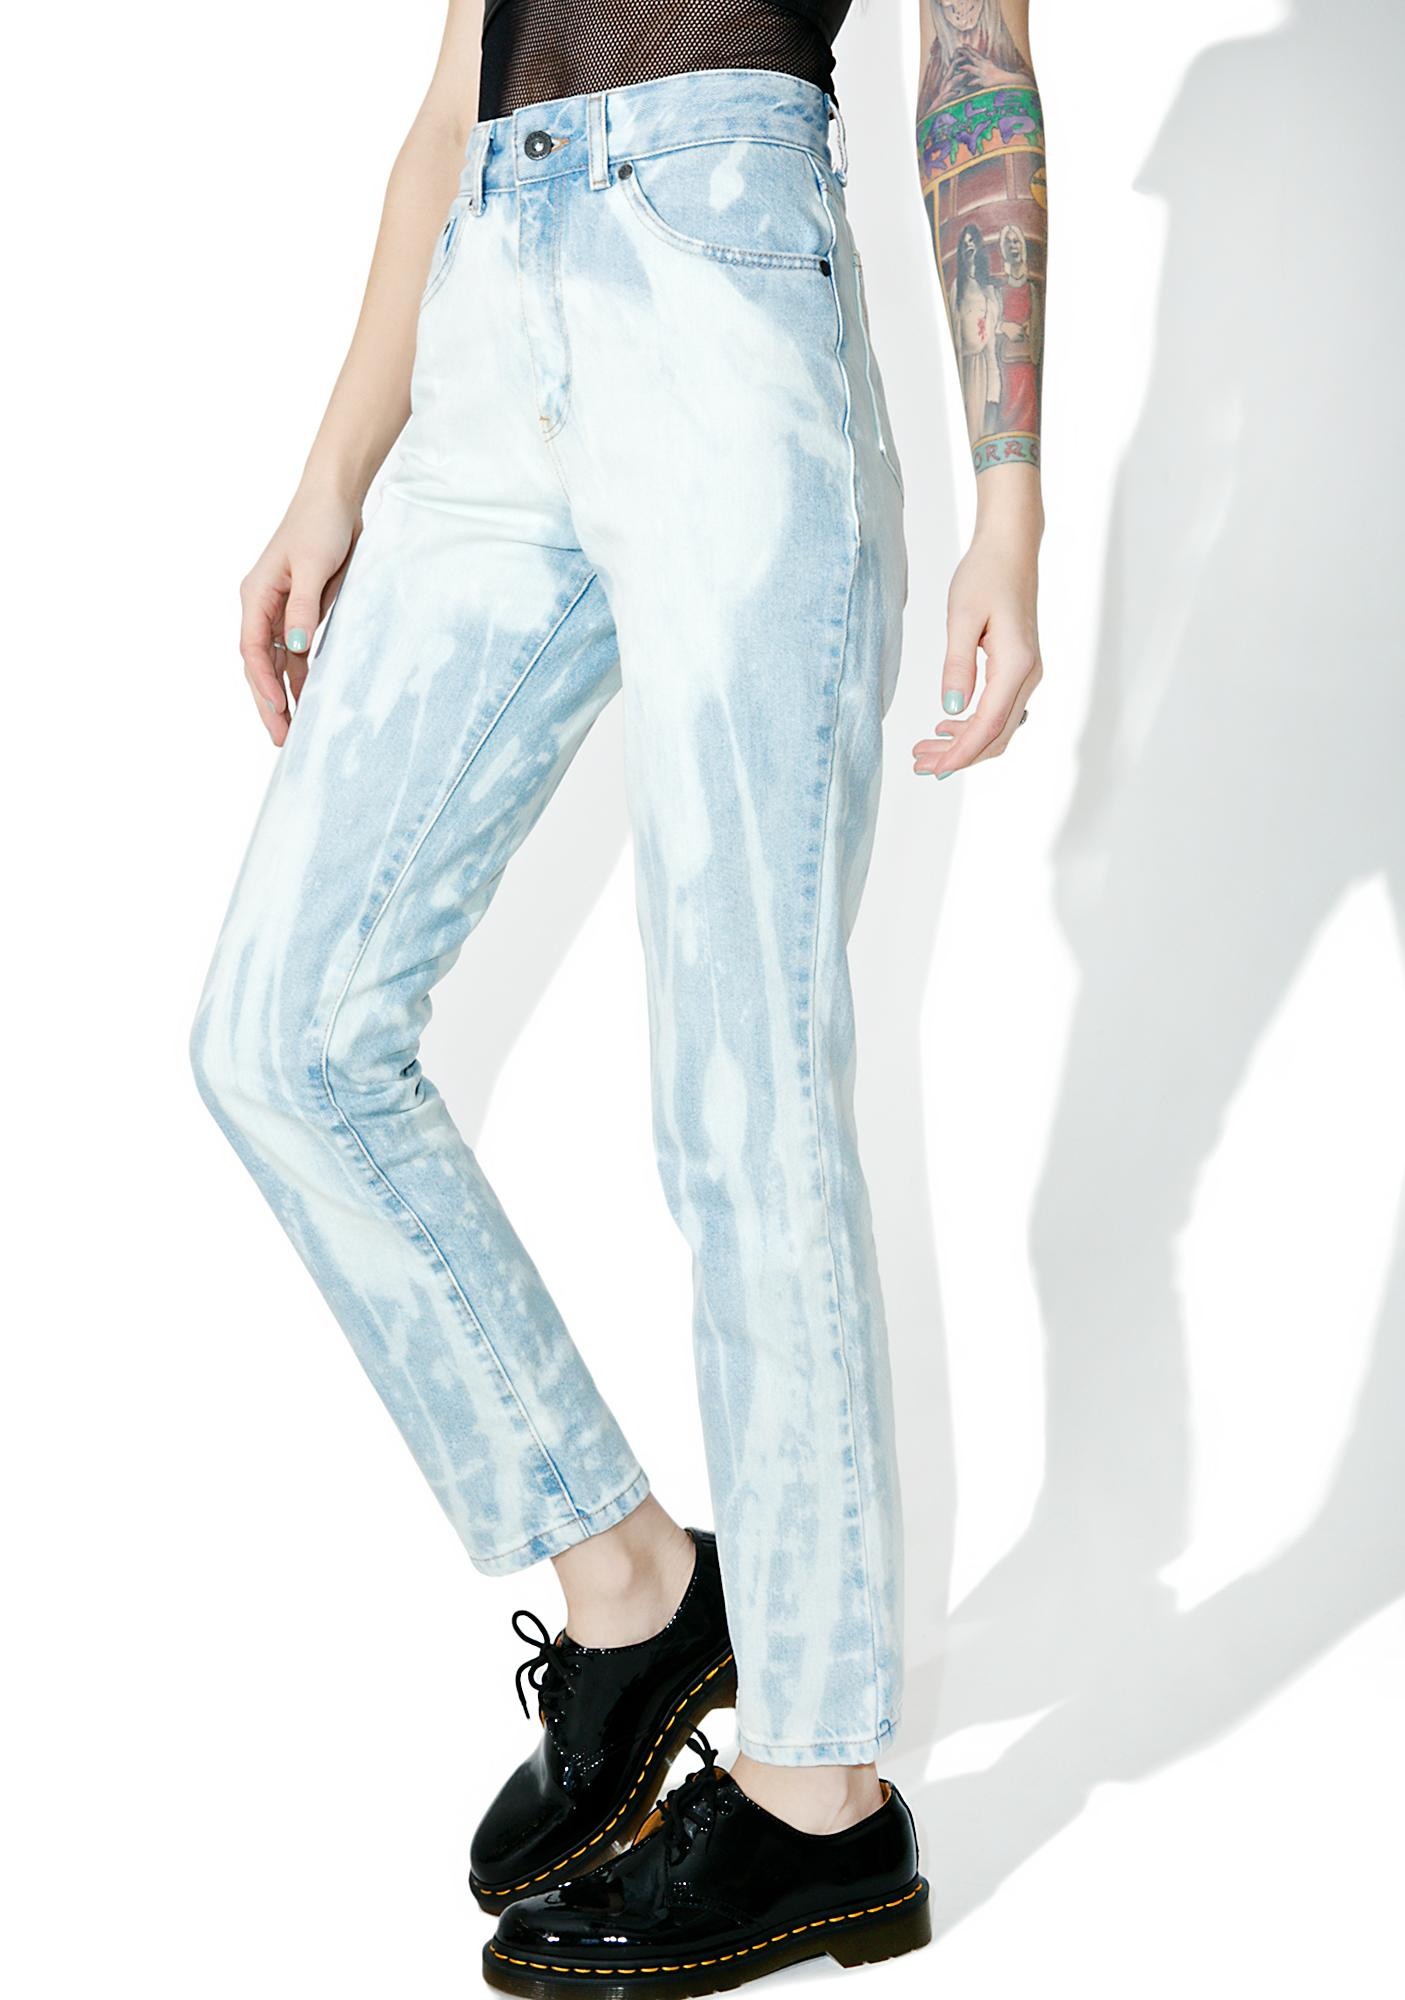 The Ragged Priest Throwback Jean